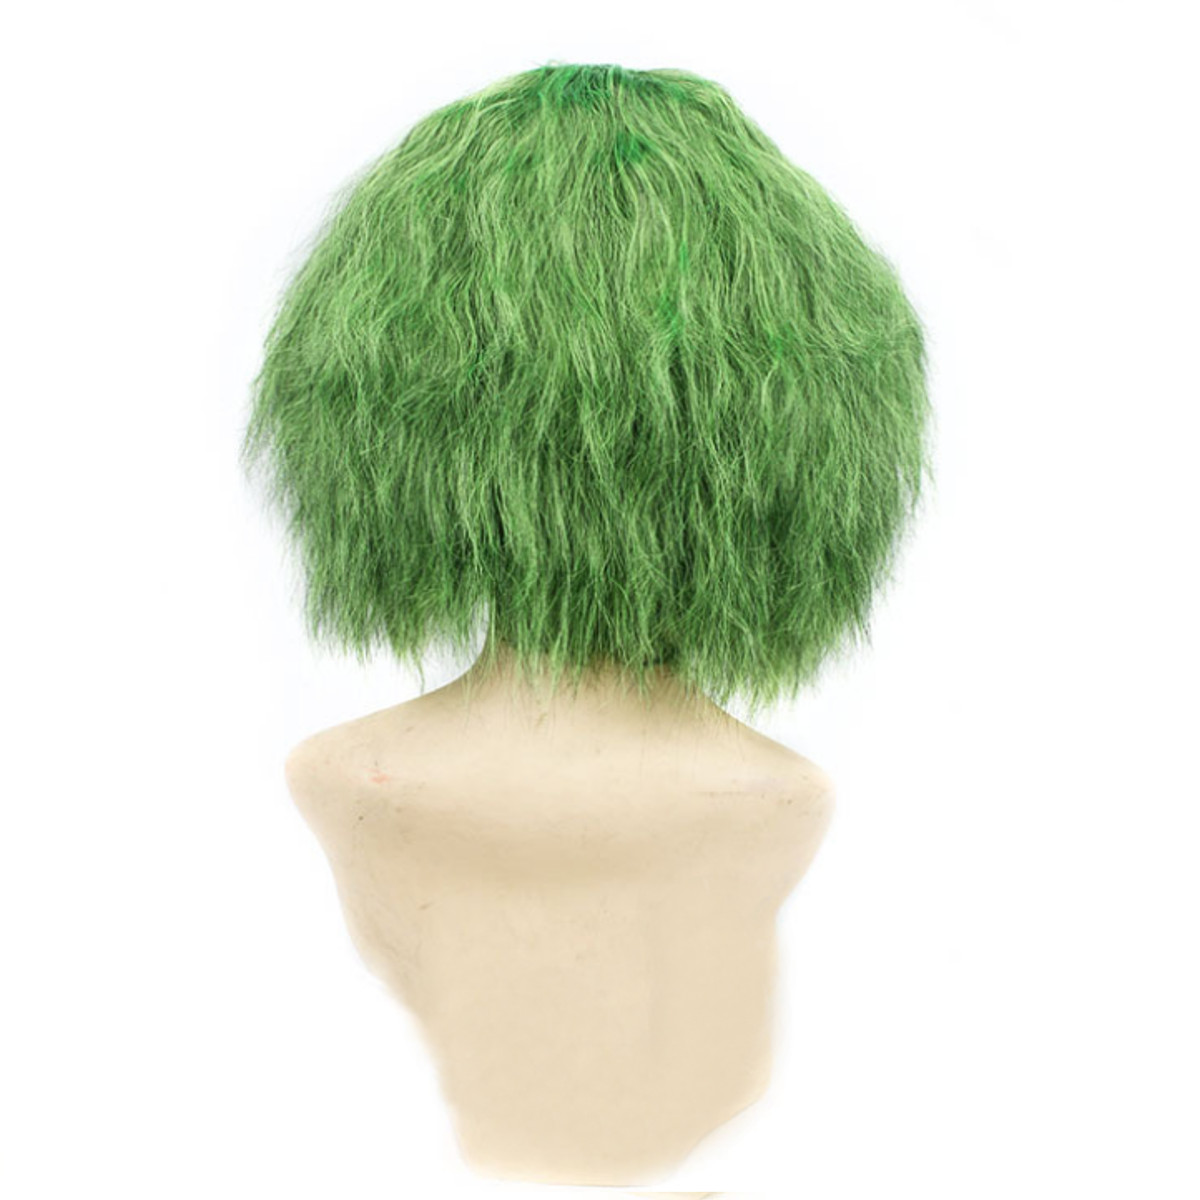 Costume Cosplay Green Curly Wig Clown Heat Synthetic Hair Men Wig+Wig Cap Props